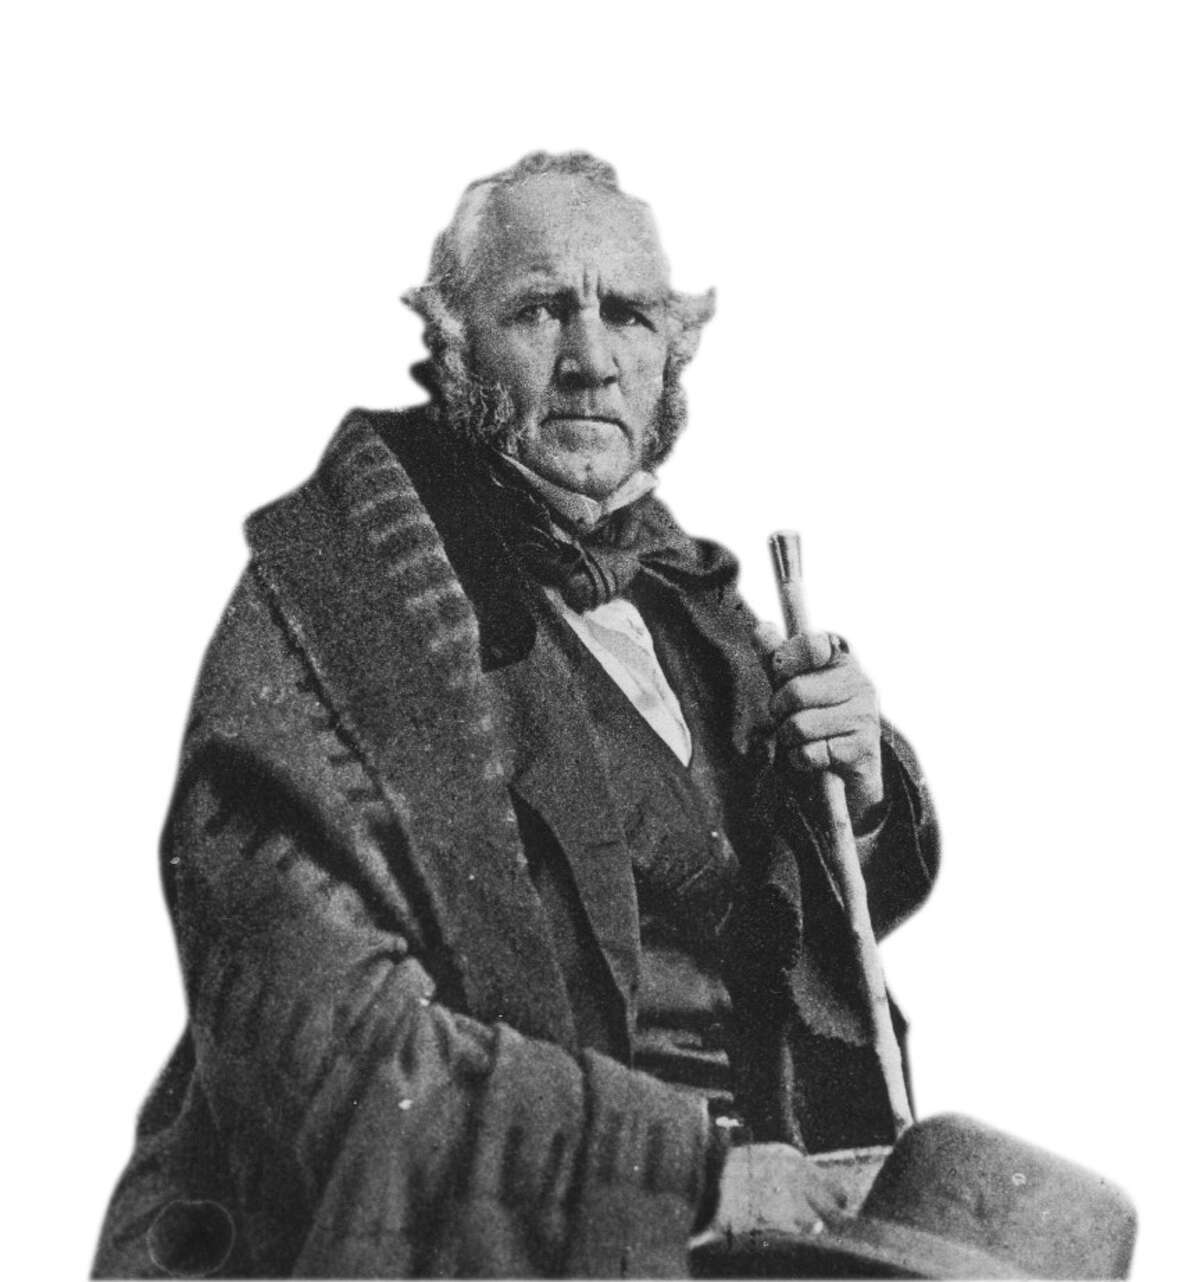 Gen. Sam Houston, the hero of the Battle of San Jacinto, apparently had ancestral ties to a noble family in Scotland.